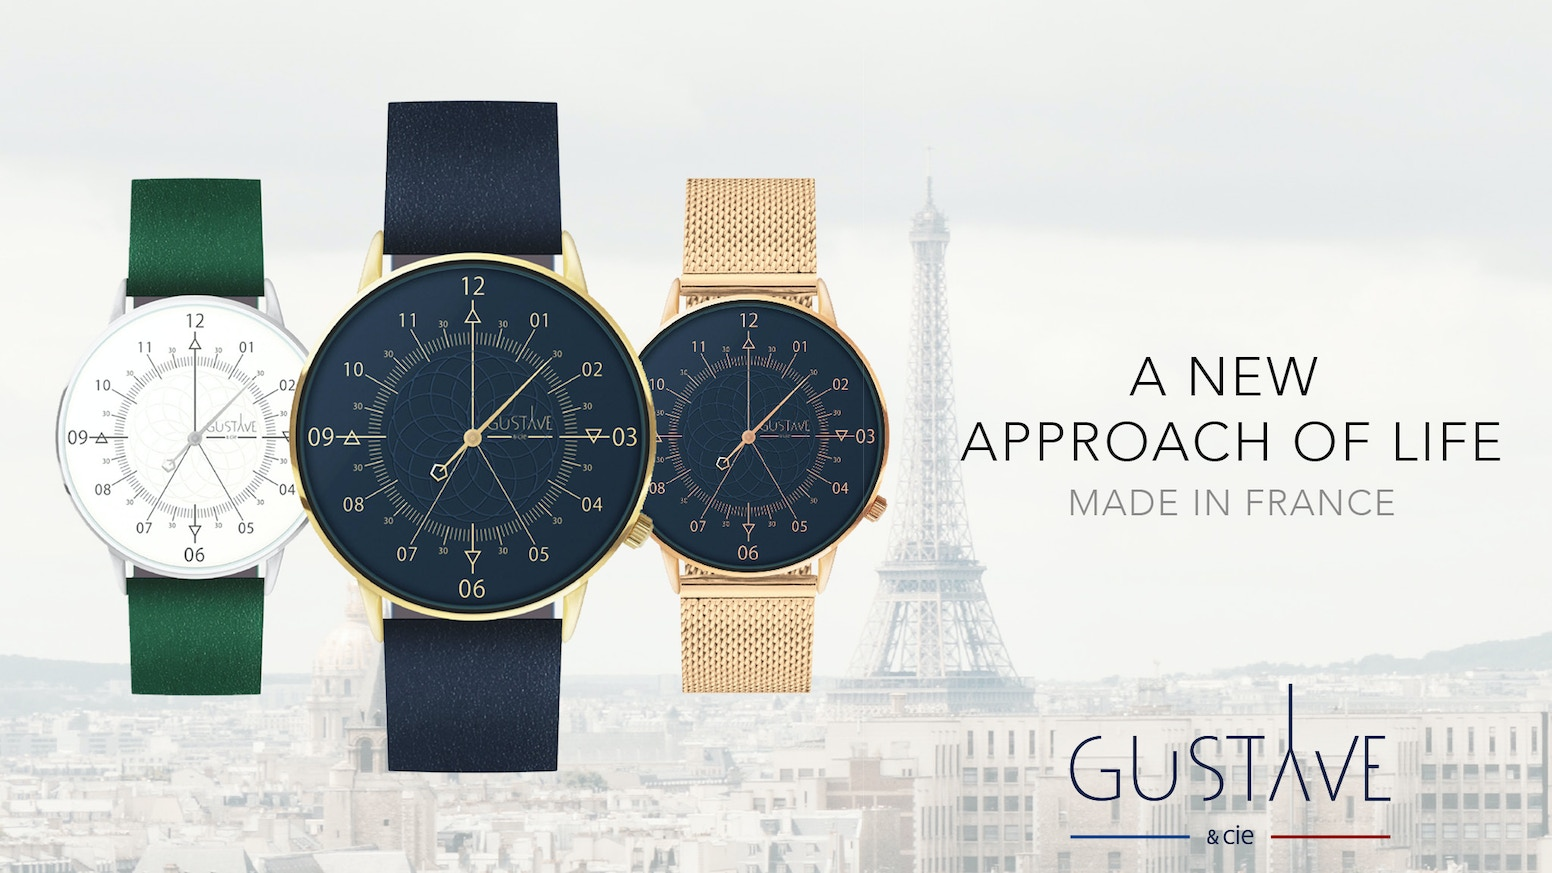 Much more than a watch, a new approach of life, elegant, and Made in France. Single hand concept & interchangeable bands.